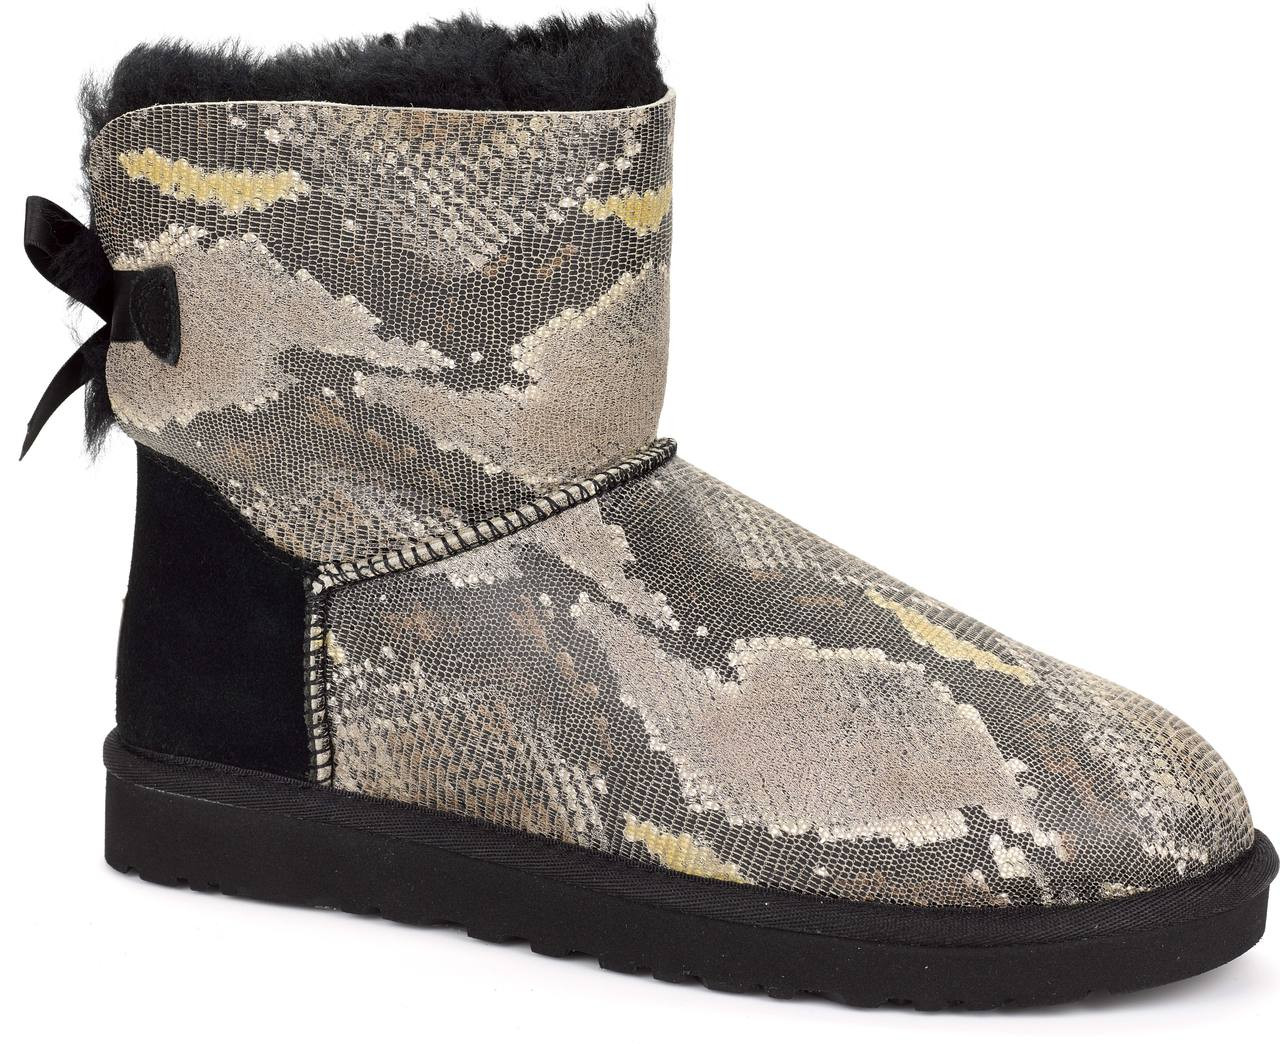 c8a29acb635 new zealand ugg mini bailey bow snake 676cf 56de7